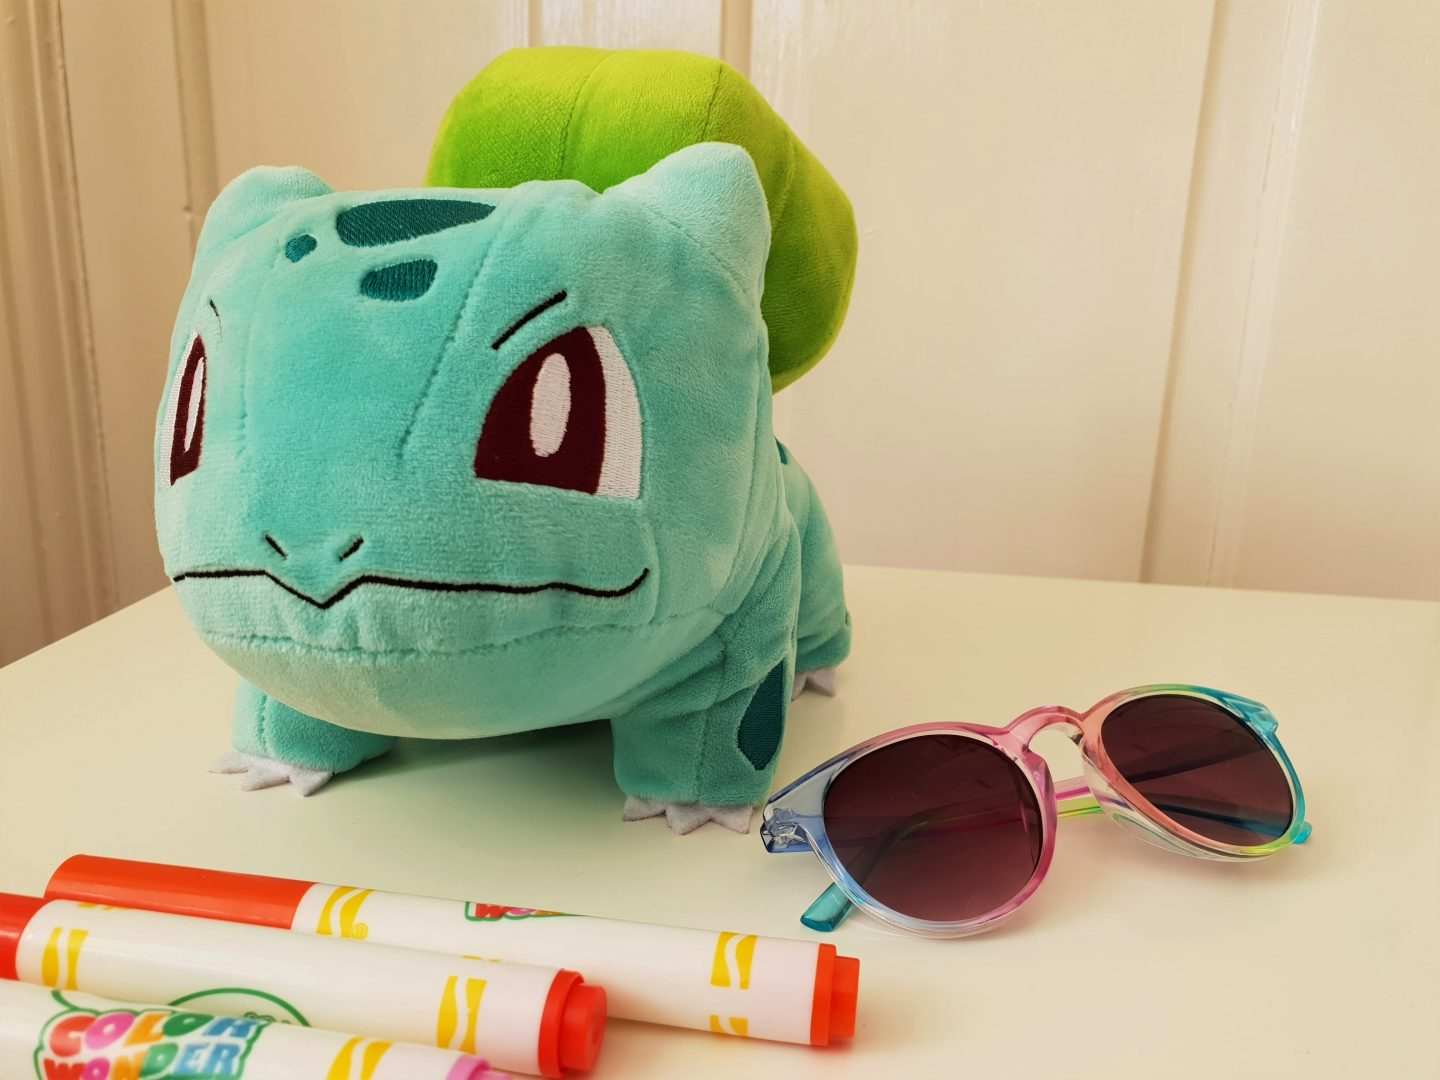 Bulbasaur cuddly toy from Smyths Toy at South Aylesford Retail Park